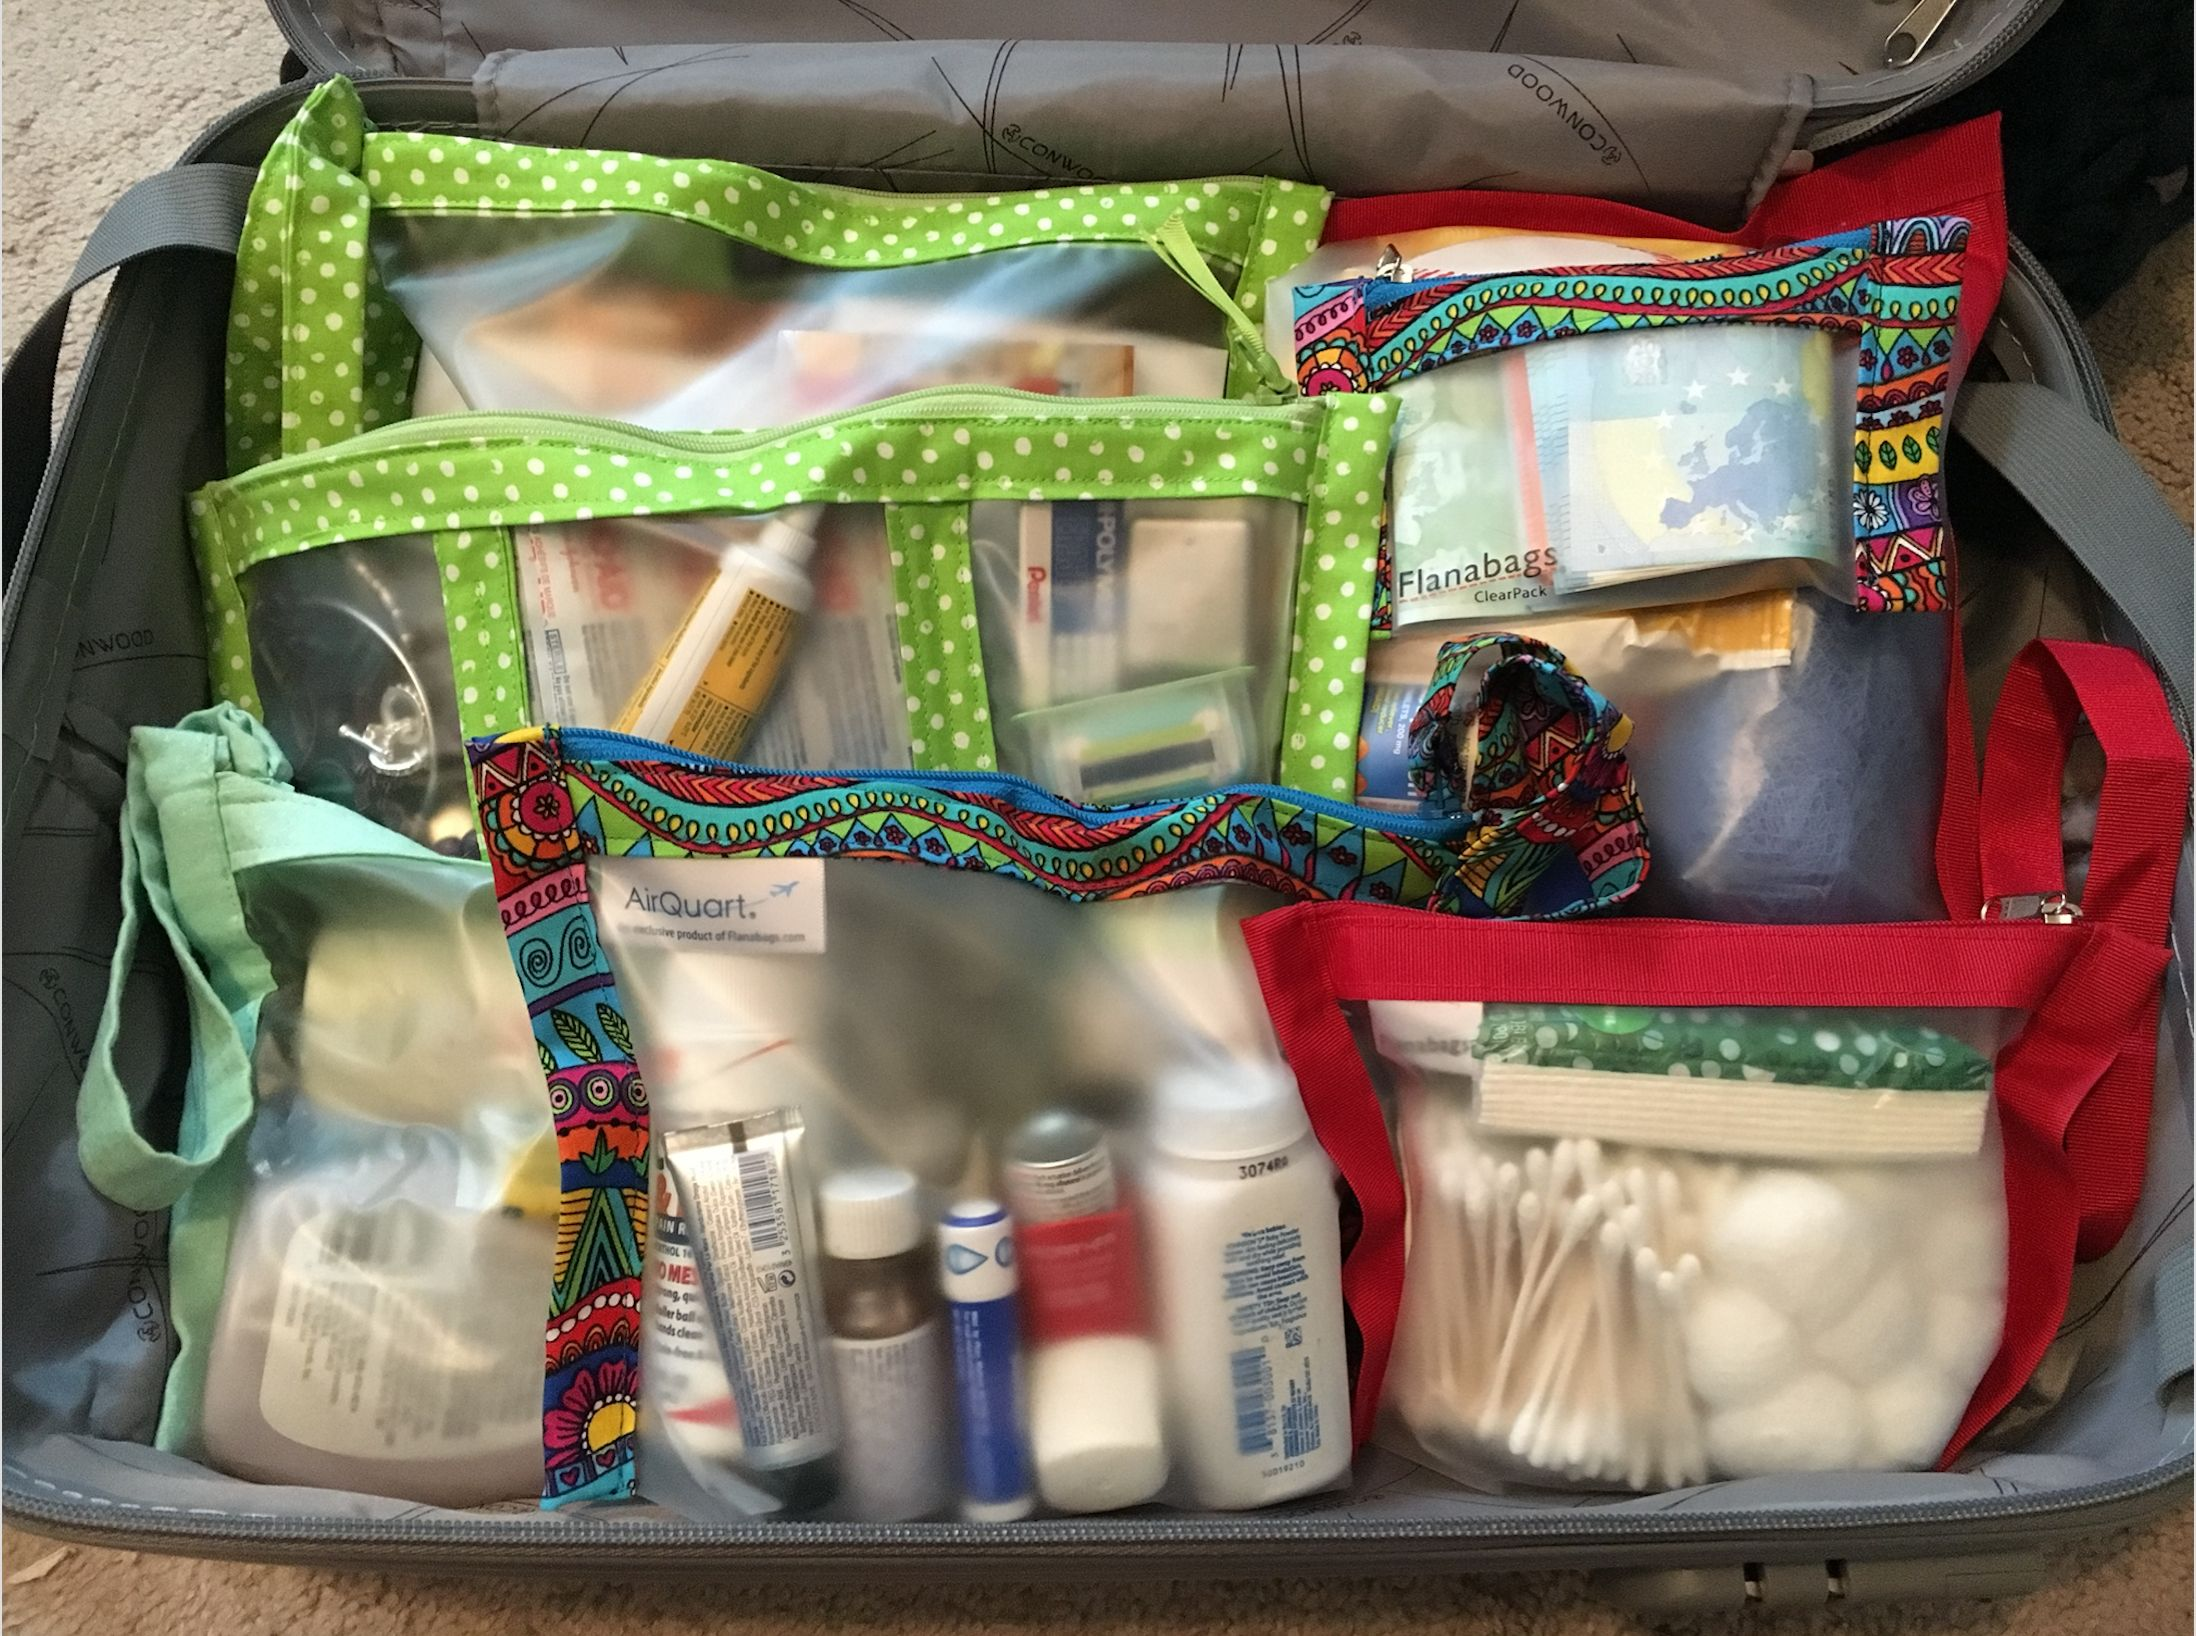 A Flanabags For Every Packing Need Tsa Compliant Liquids Large